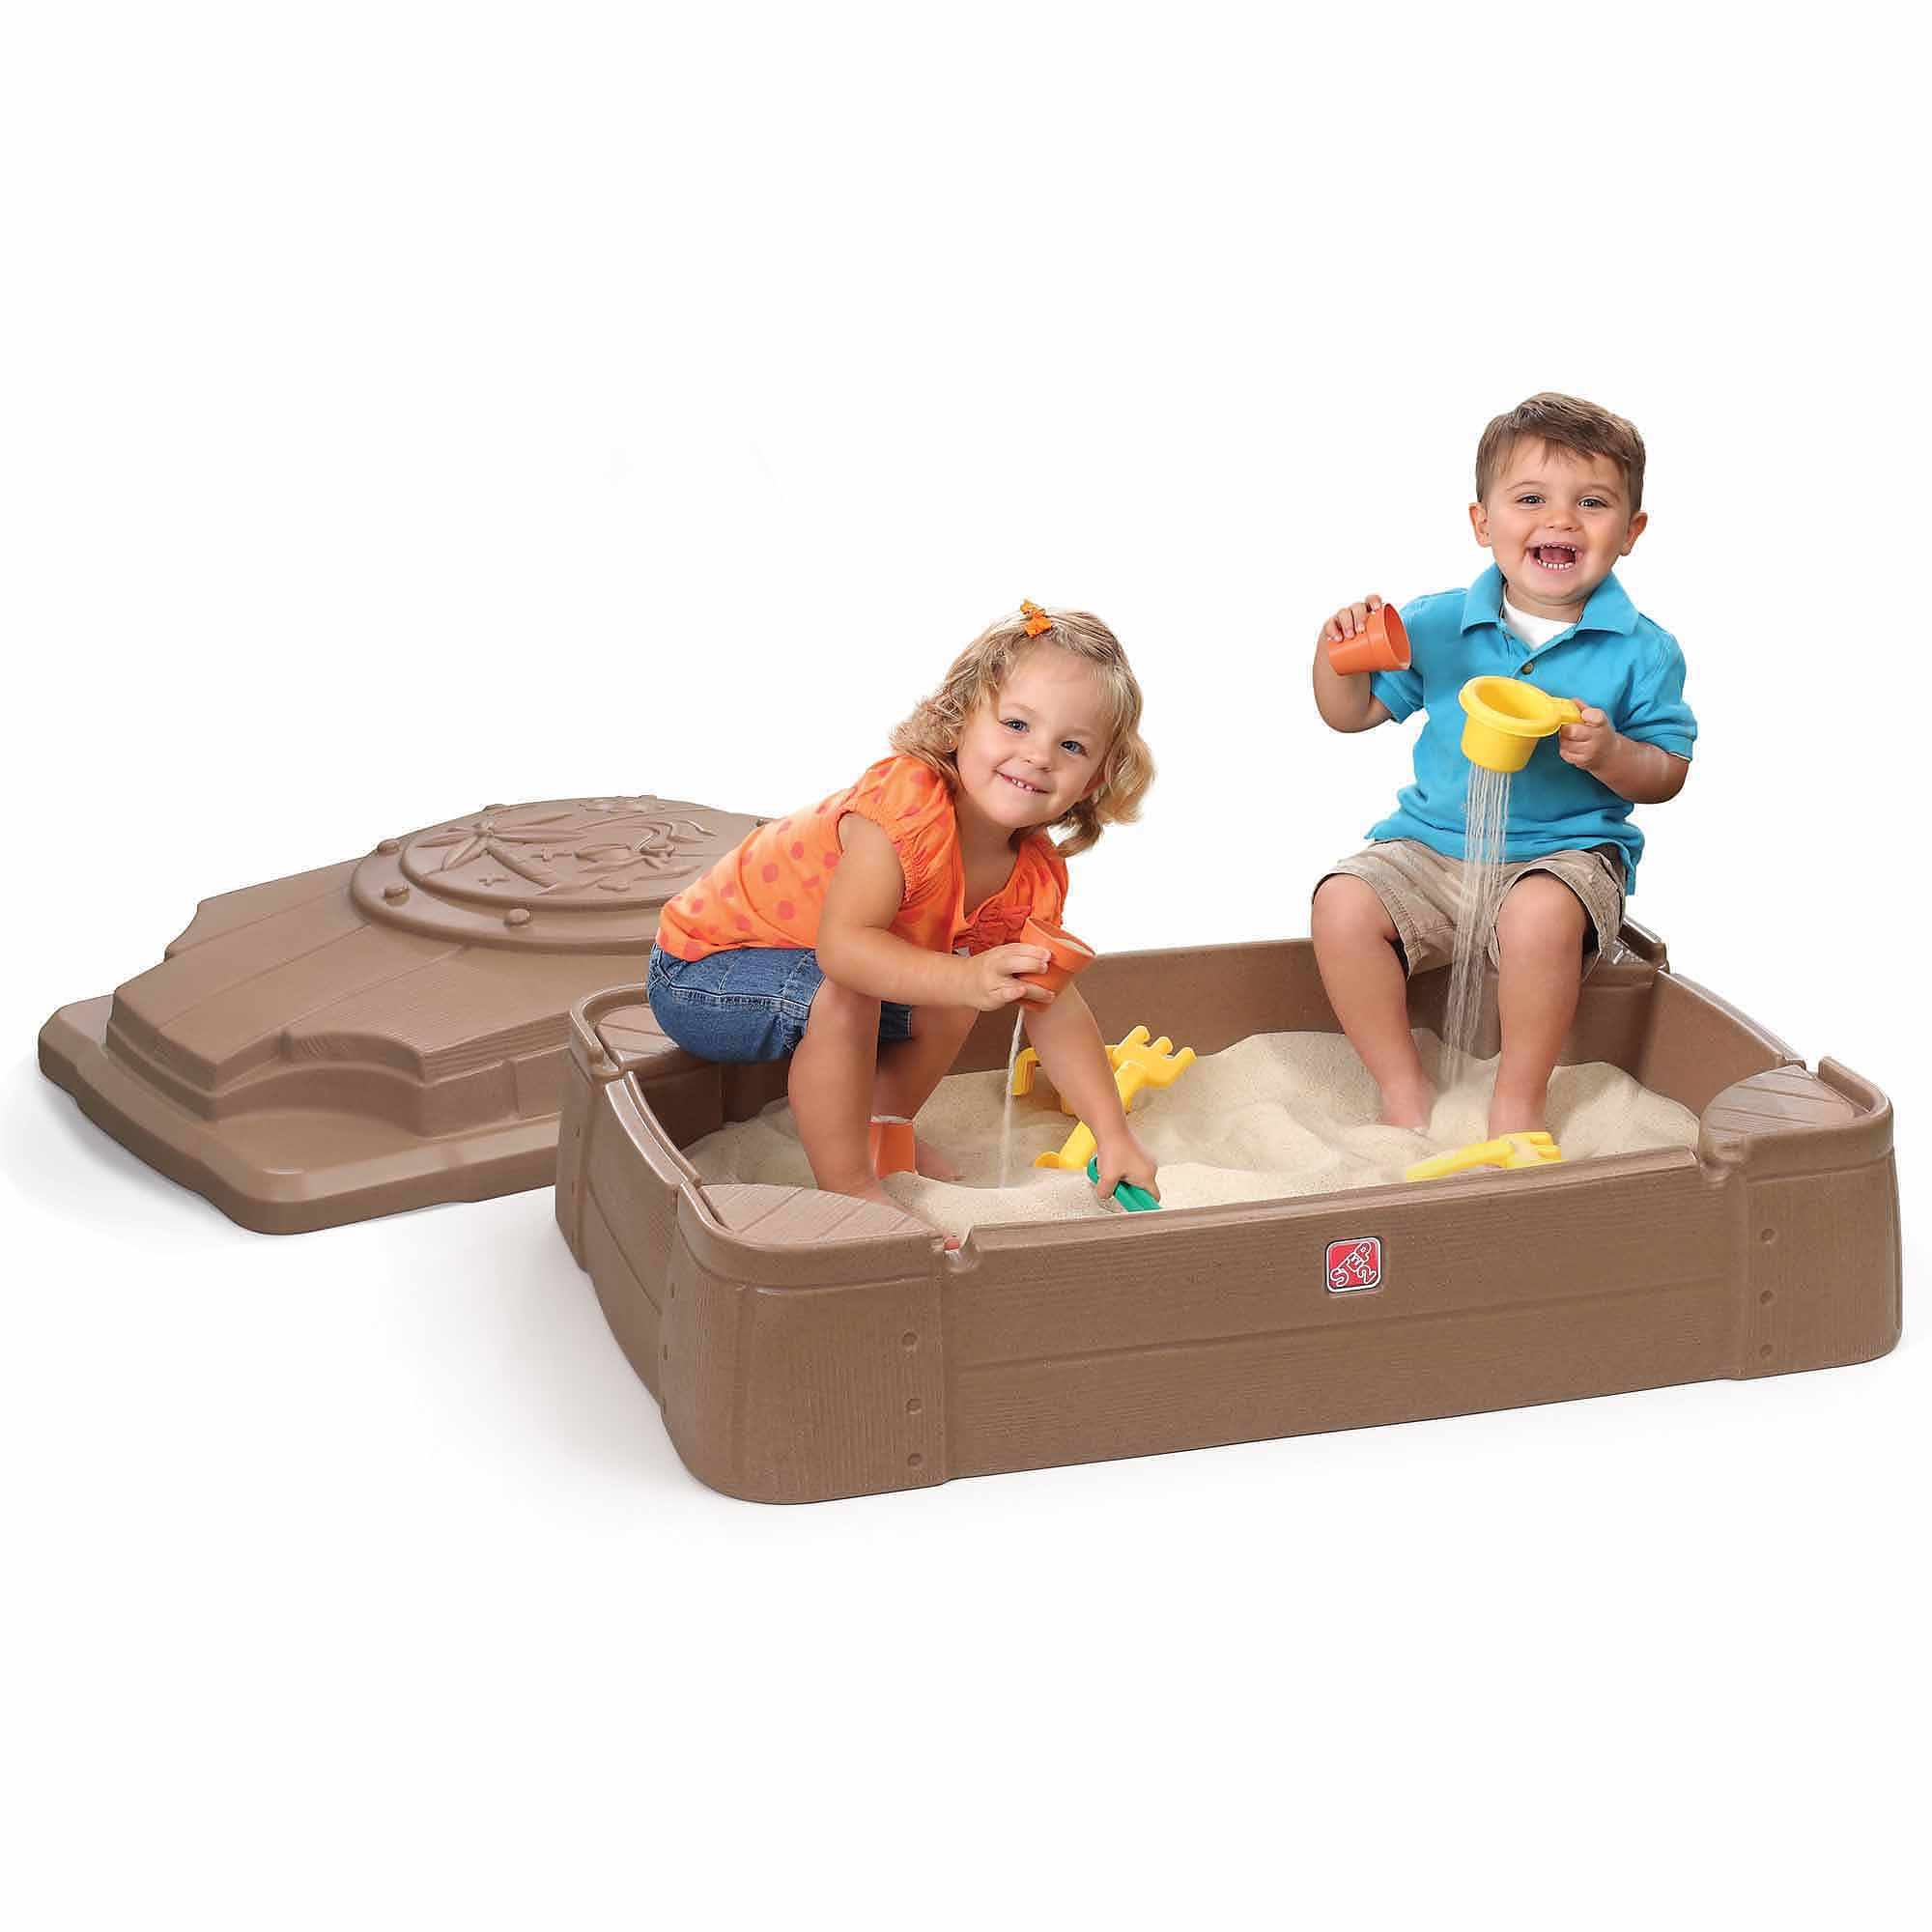 Little Tikes Big Digger Sandbox Walmart